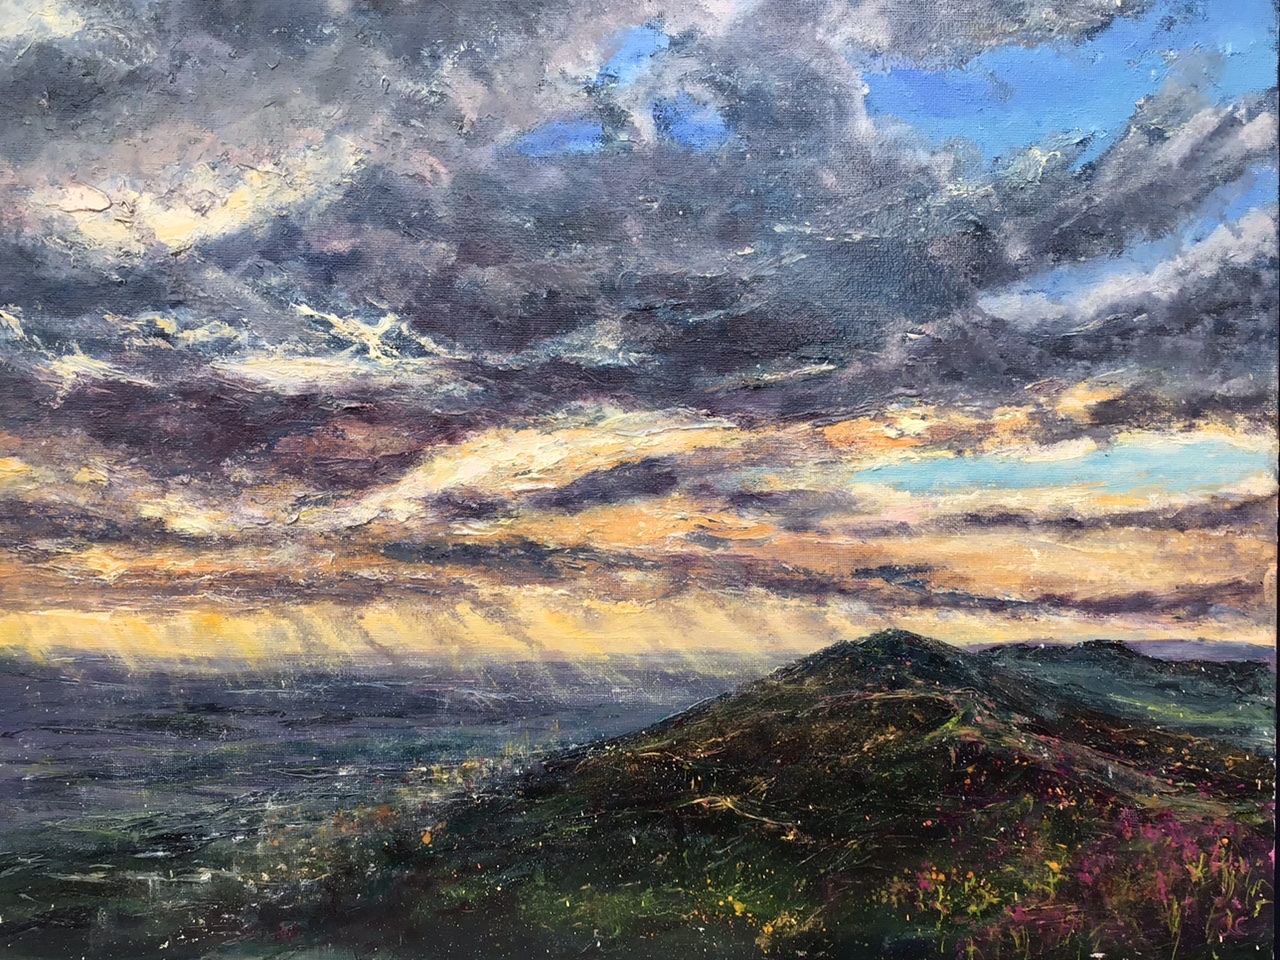 Dawn, Worcestershire Beacon, oil painting by Anna Cumming